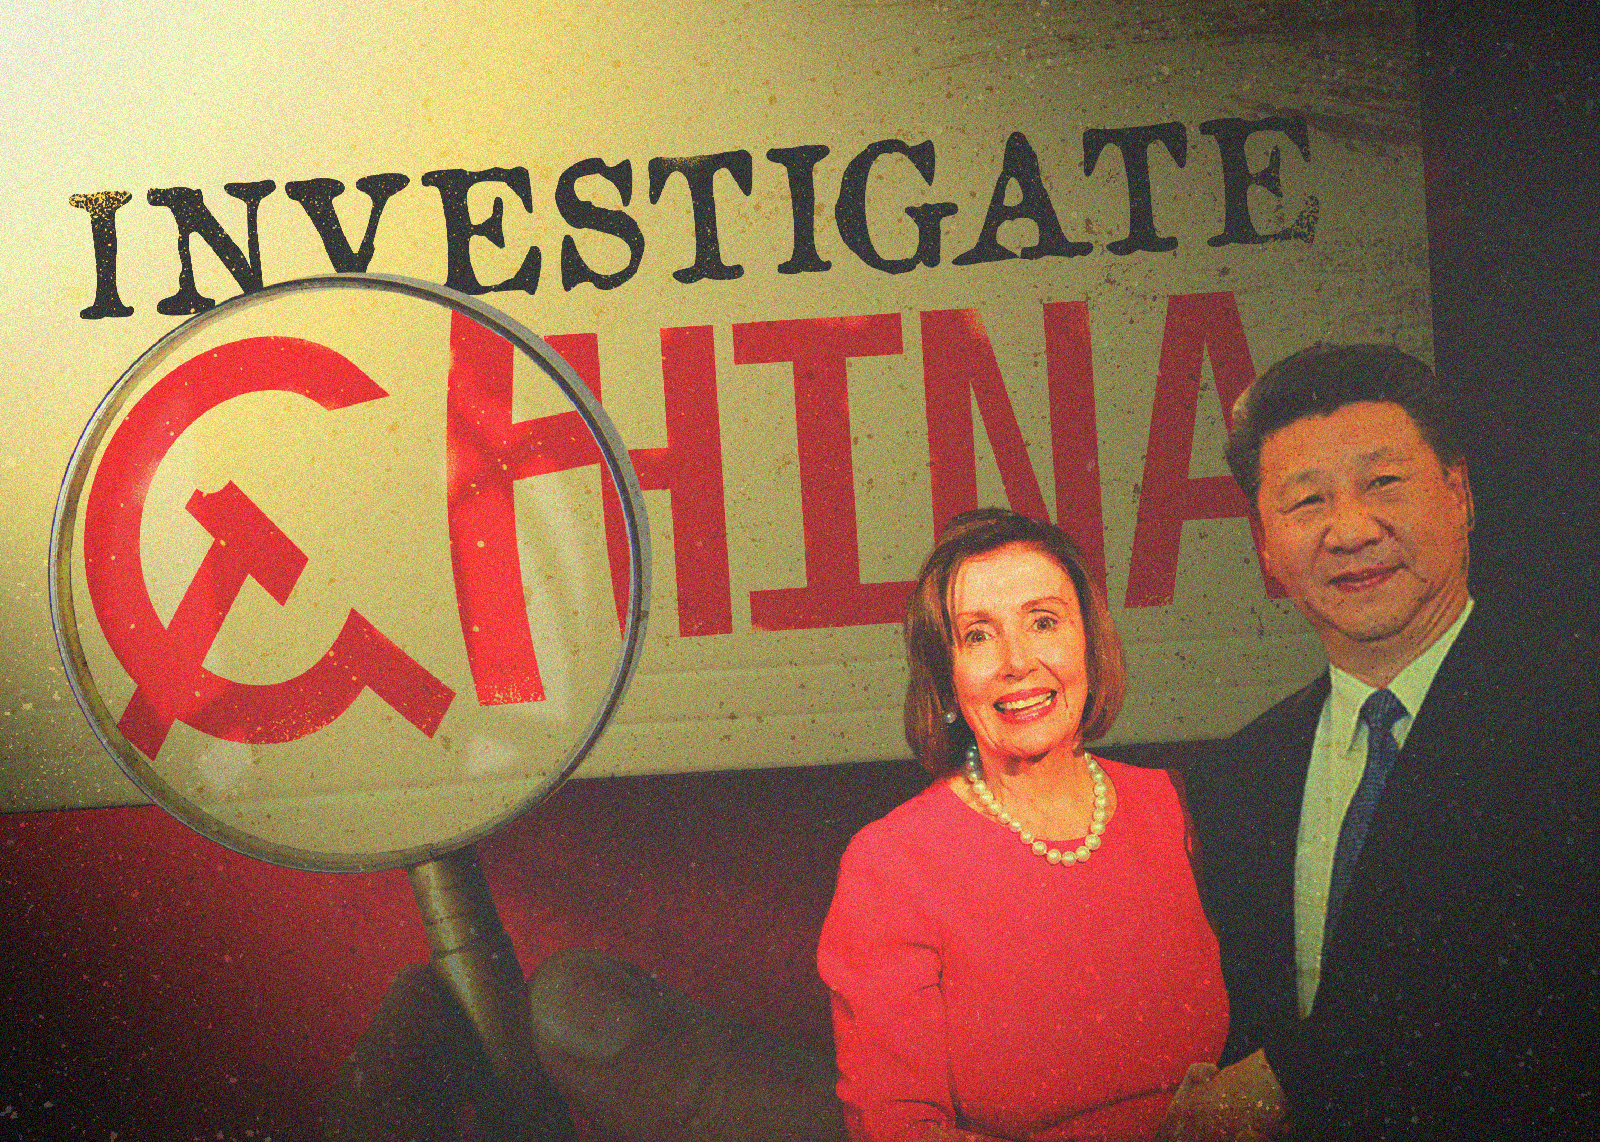 Hold China accountable graphic